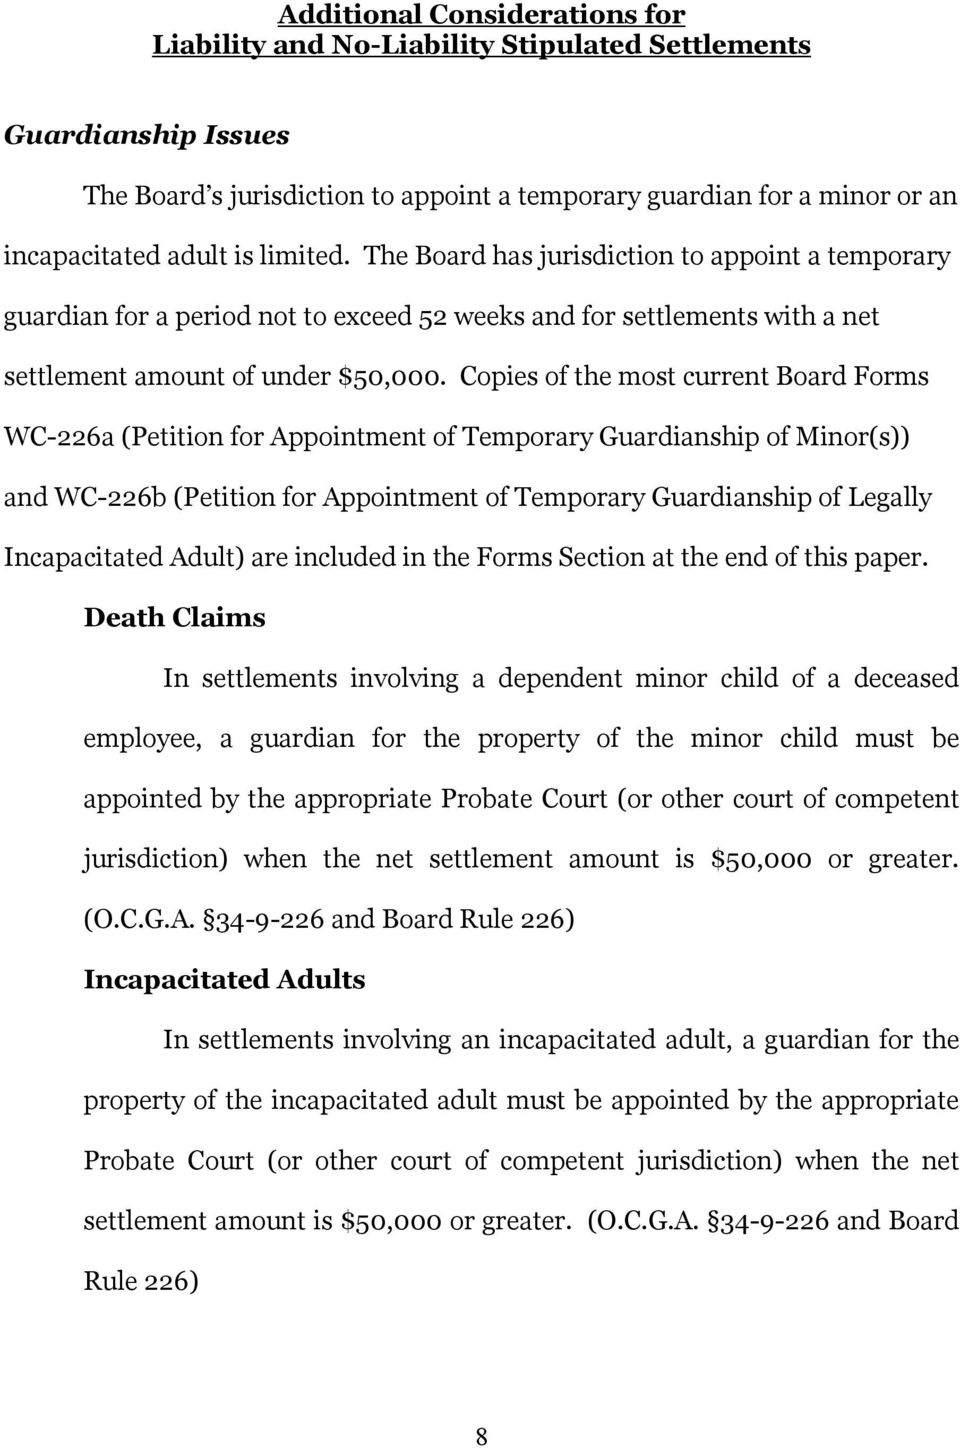 Copies of the most current Board Forms WC-226a (Petition for Appointment of Temporary Guardianship of Minor(s)) and WC-226b (Petition for Appointment of Temporary Guardianship of Legally